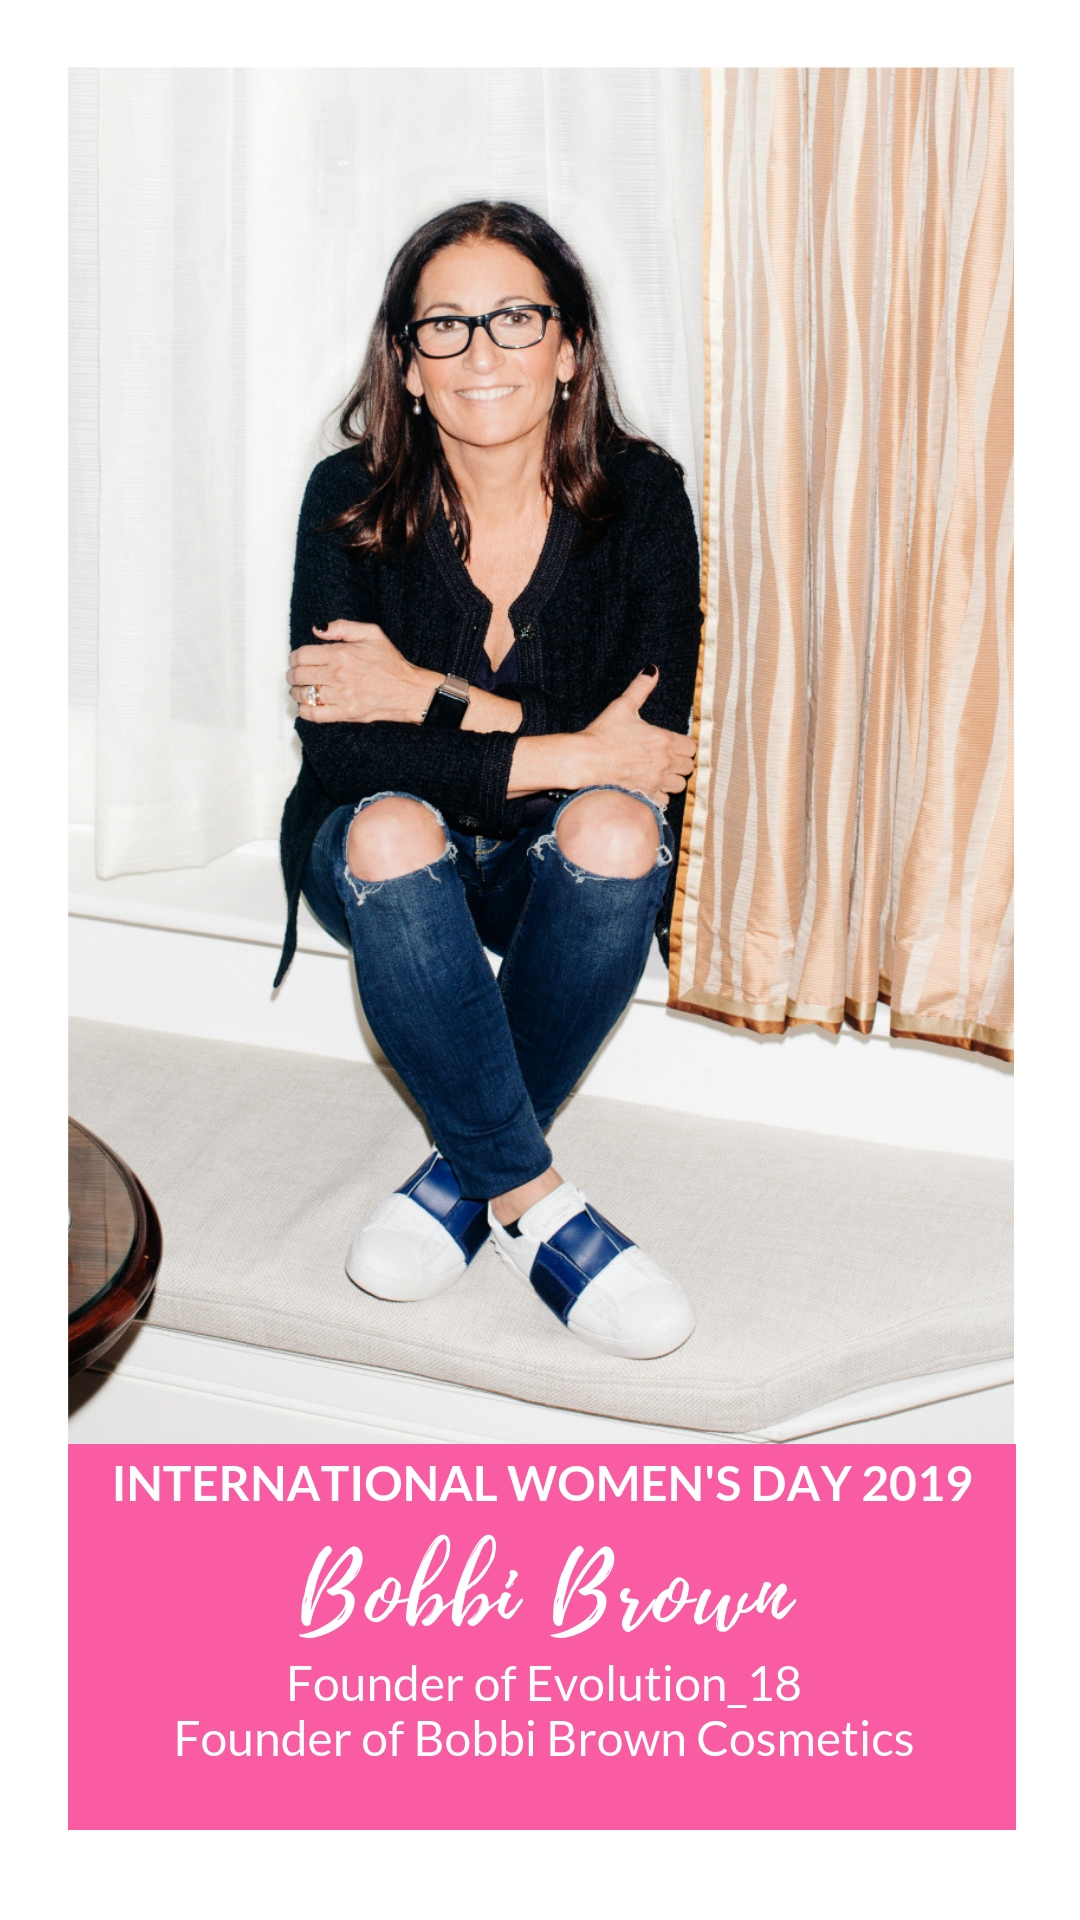 International Women's Day - Bobbi Brown